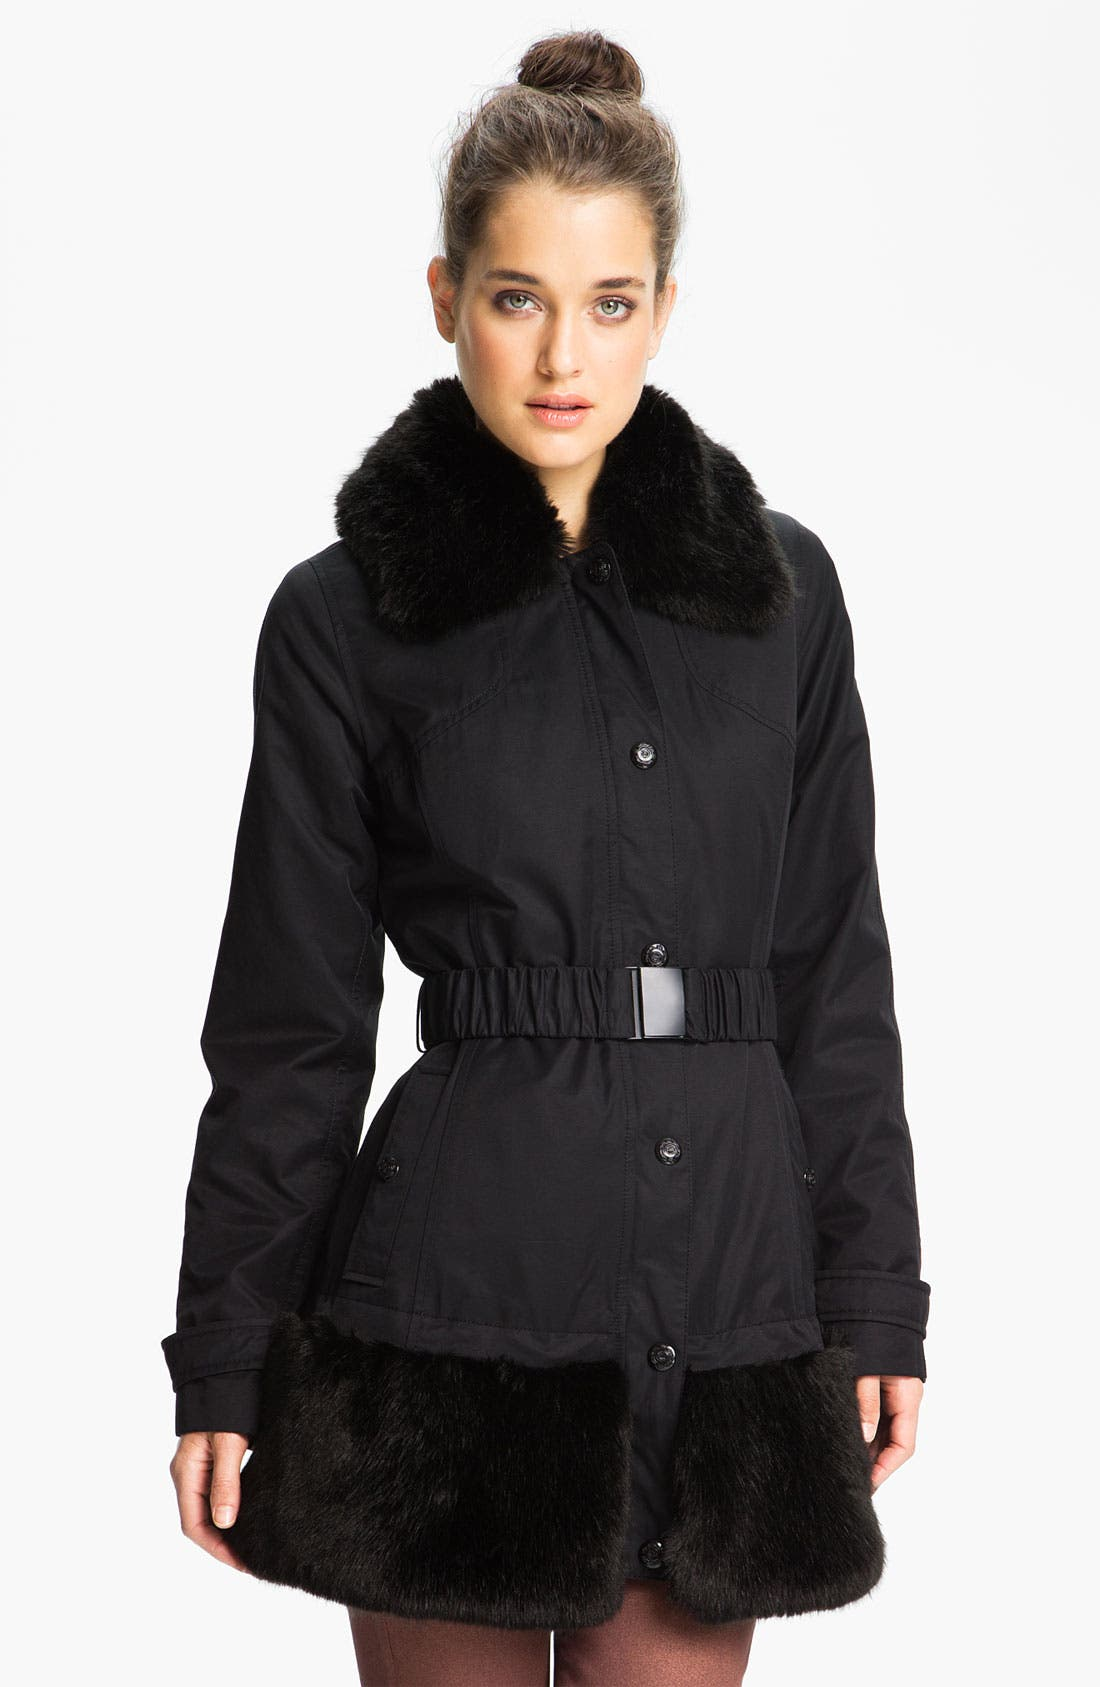 Main Image - Laundry by Shelli Segal Belted Coat with Detachable Faux Fur